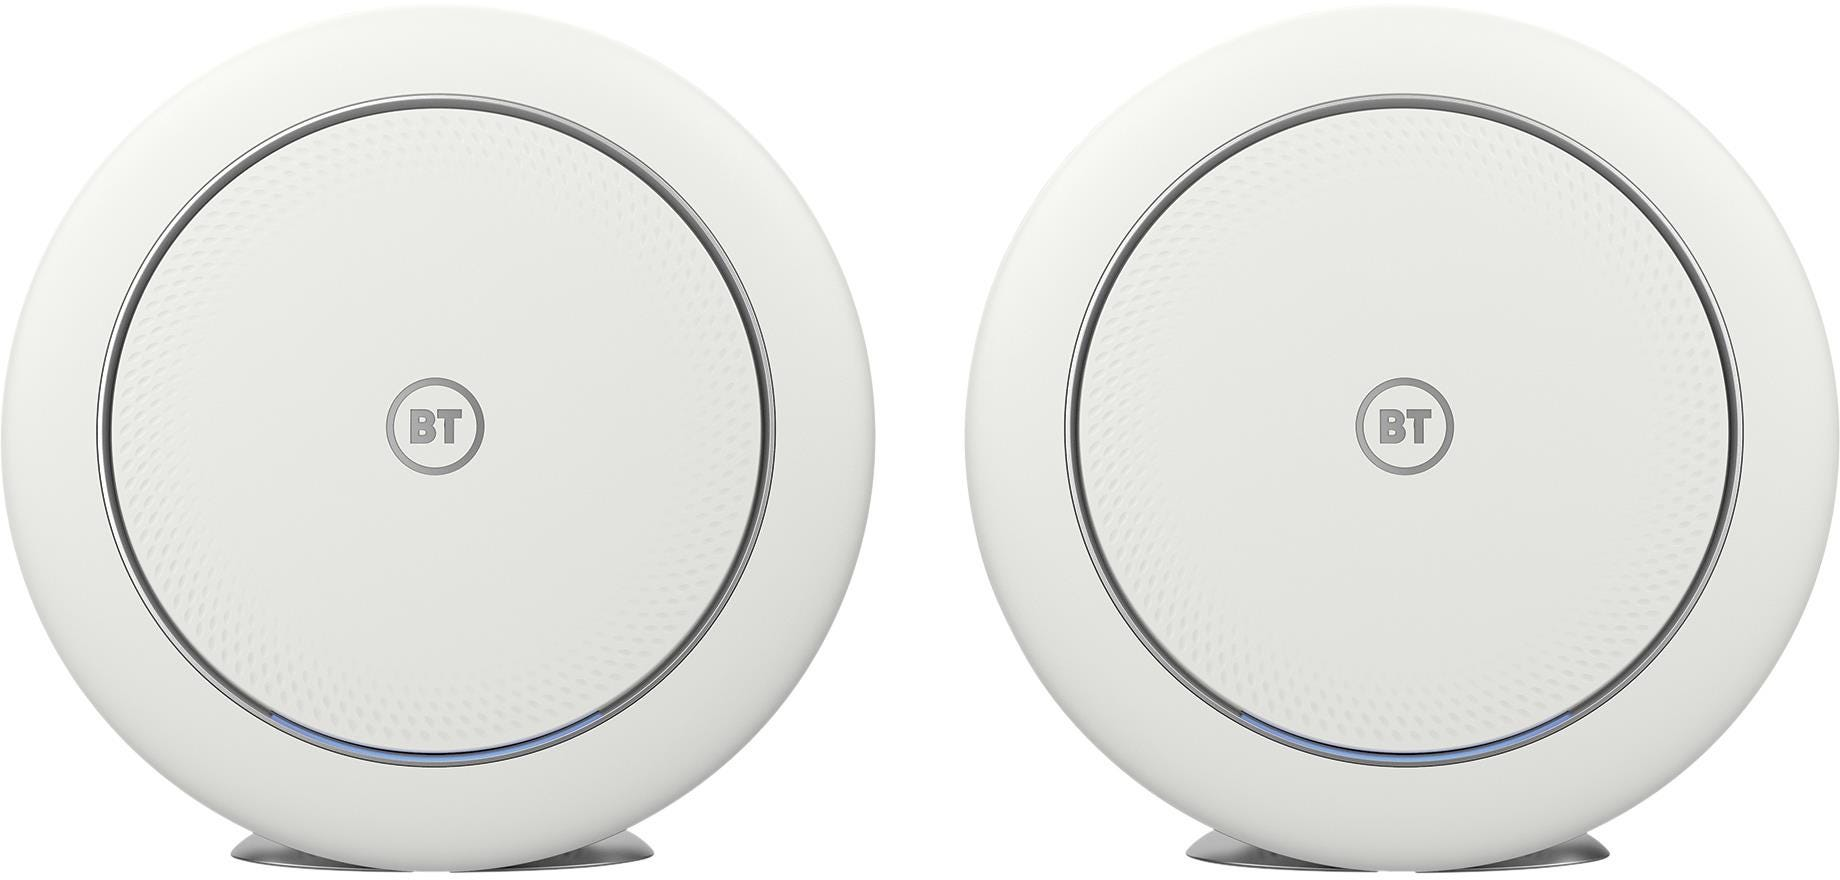 BT Premium Whole Home WiFi System - Twin Pack